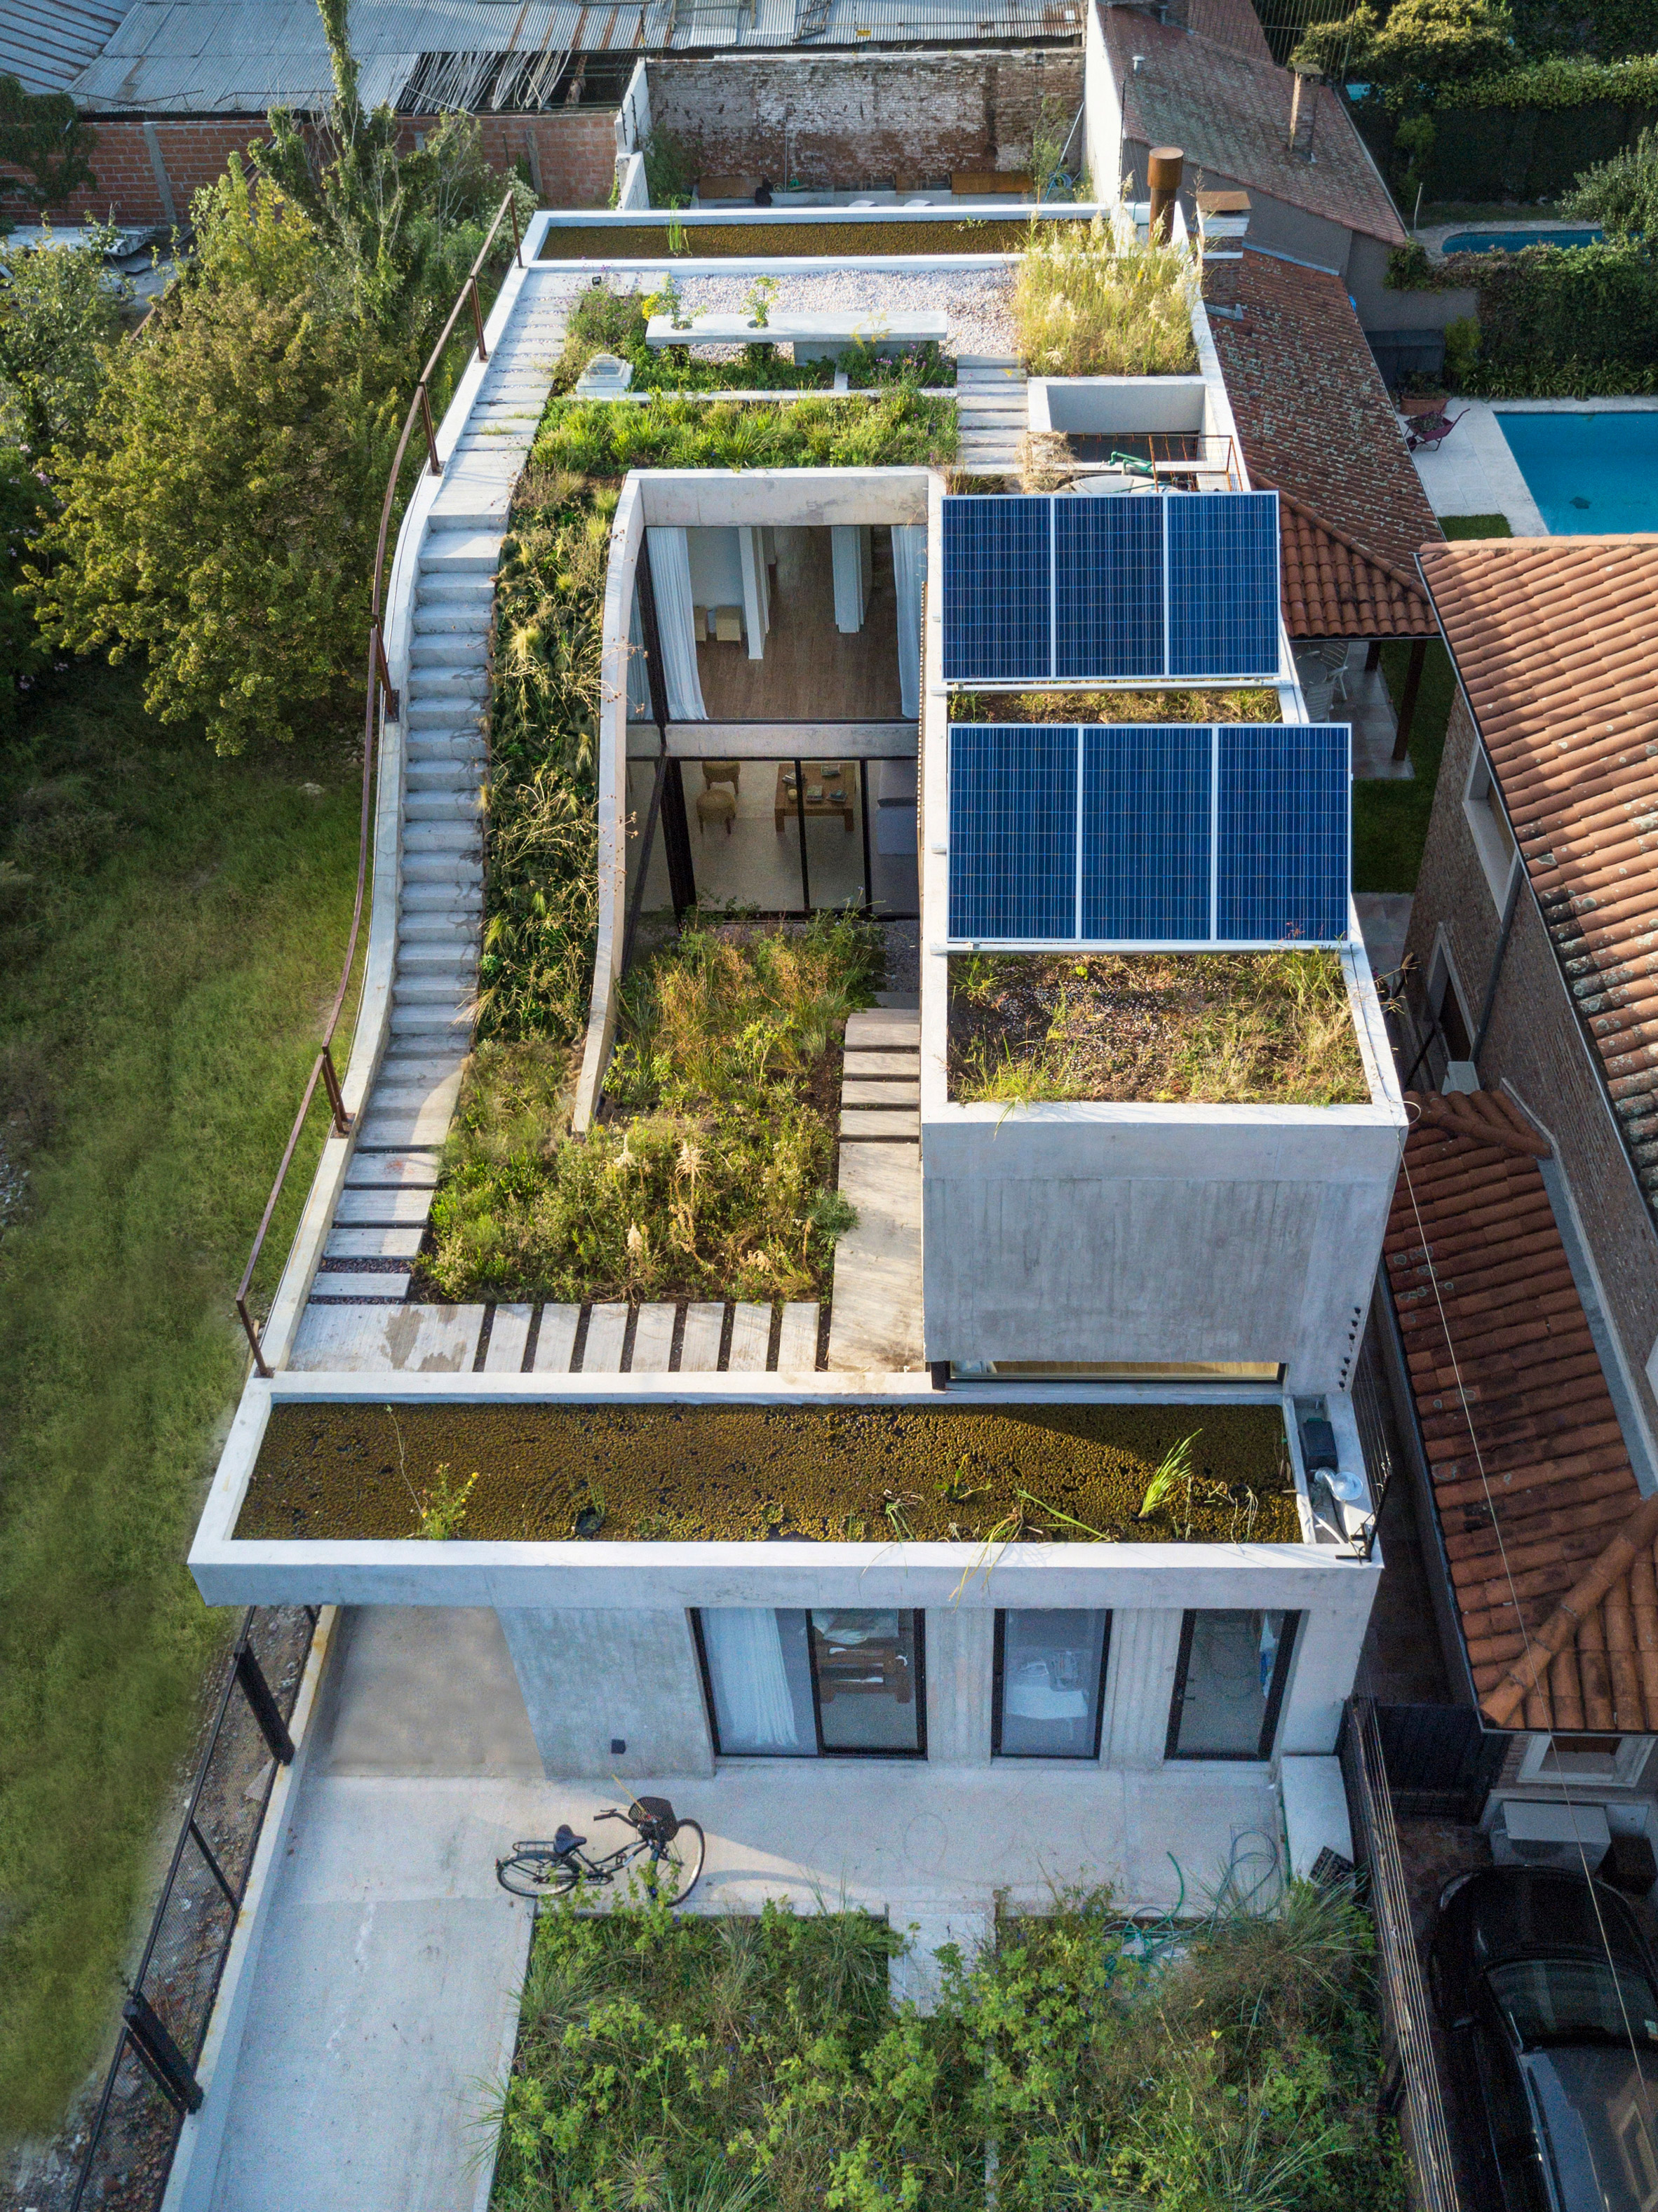 Bam! Arquitectura ramps garden up through centre of Buenos Aires home